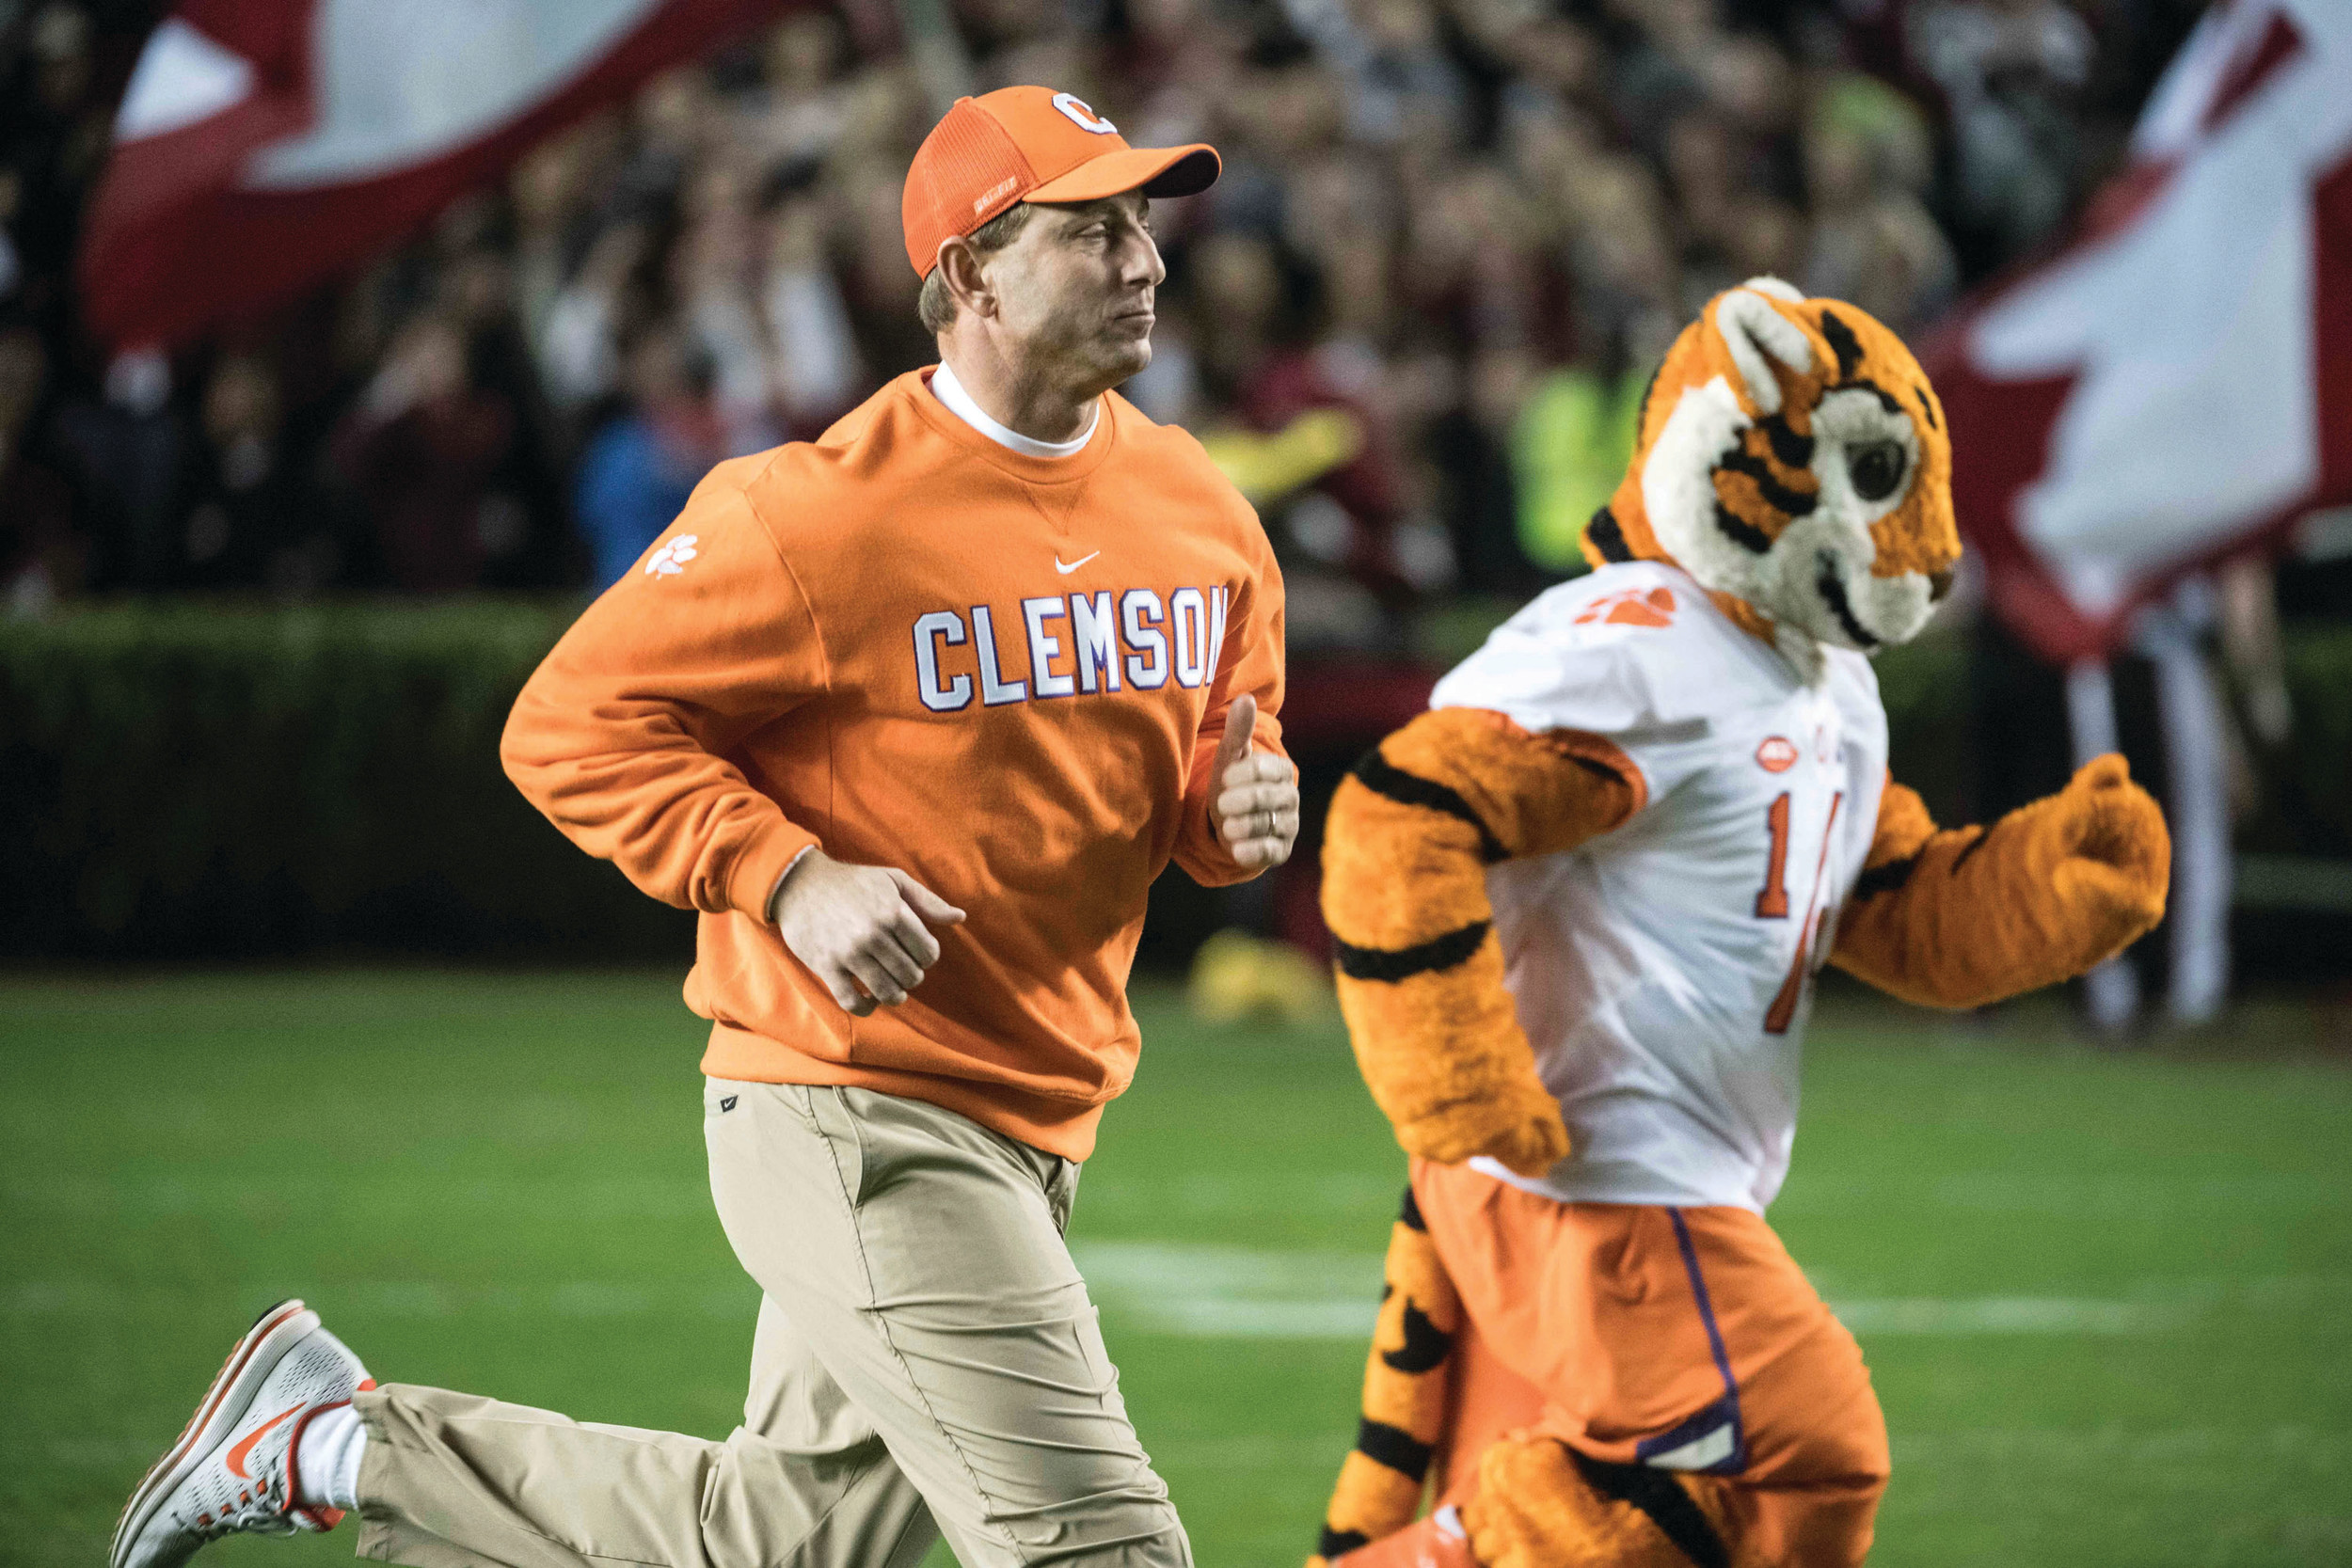 THE ASSOCIATED PRESSClemson head coach Dabo Swinney runs onto the field before an NCAA college football game Saturday in Columbia. Clemson defeated South Carolina 34-10.